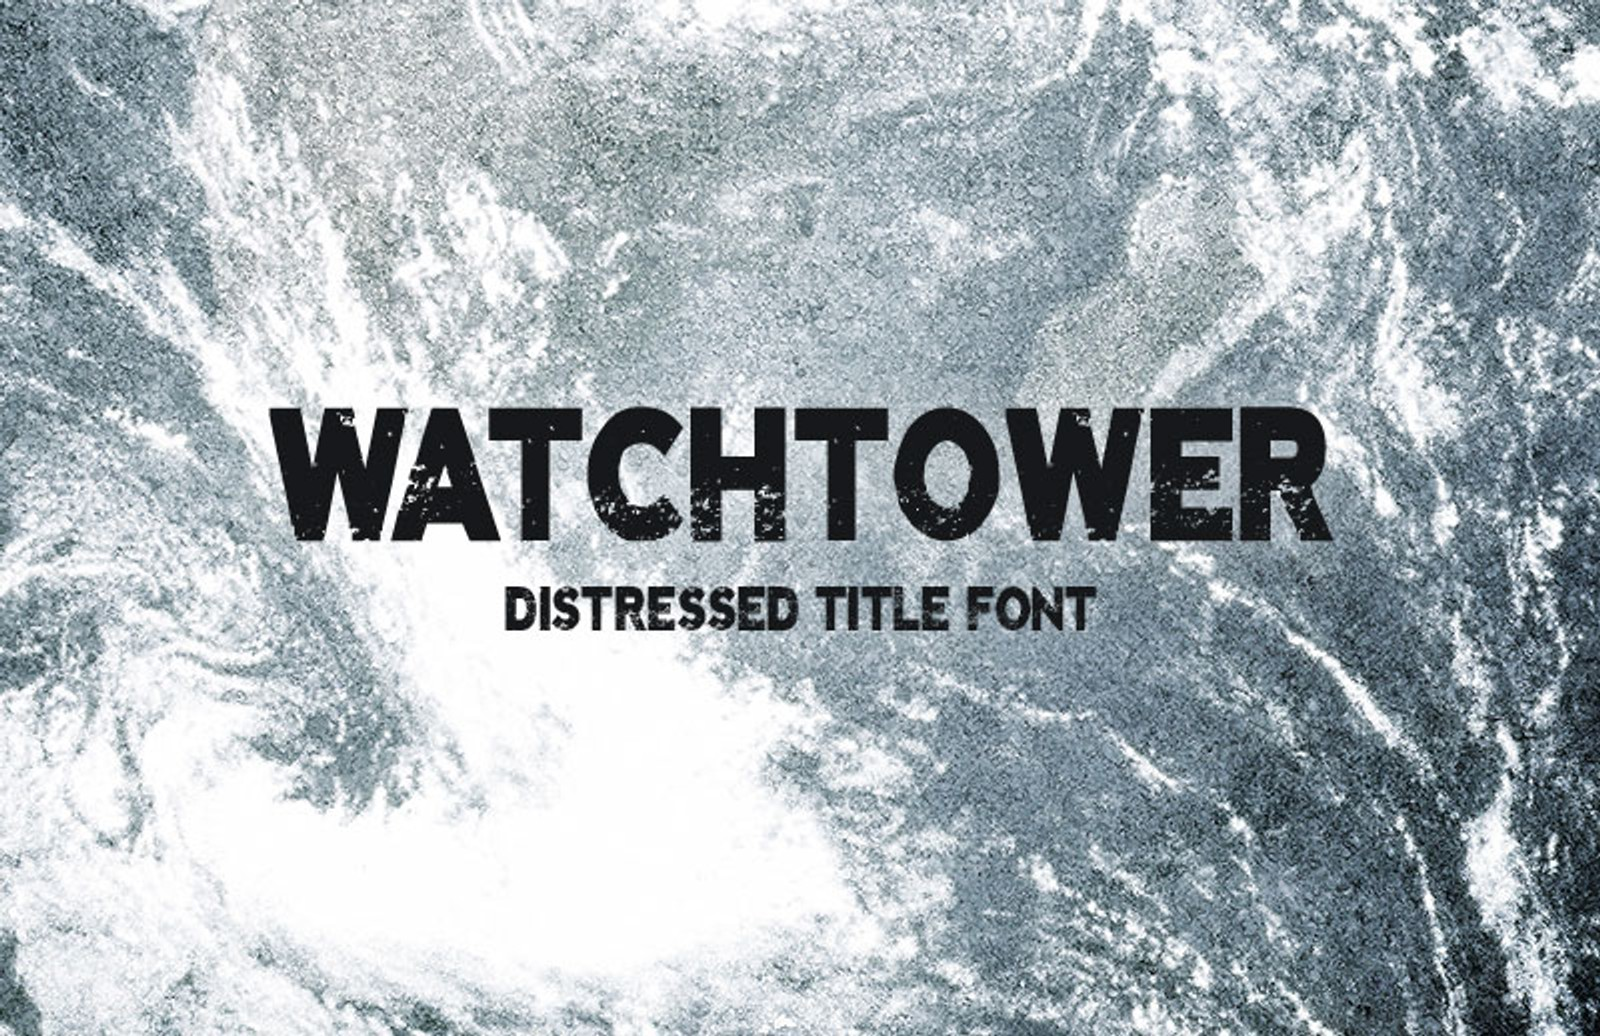 Watchtower    Distressed  Title  Font 800X518 1